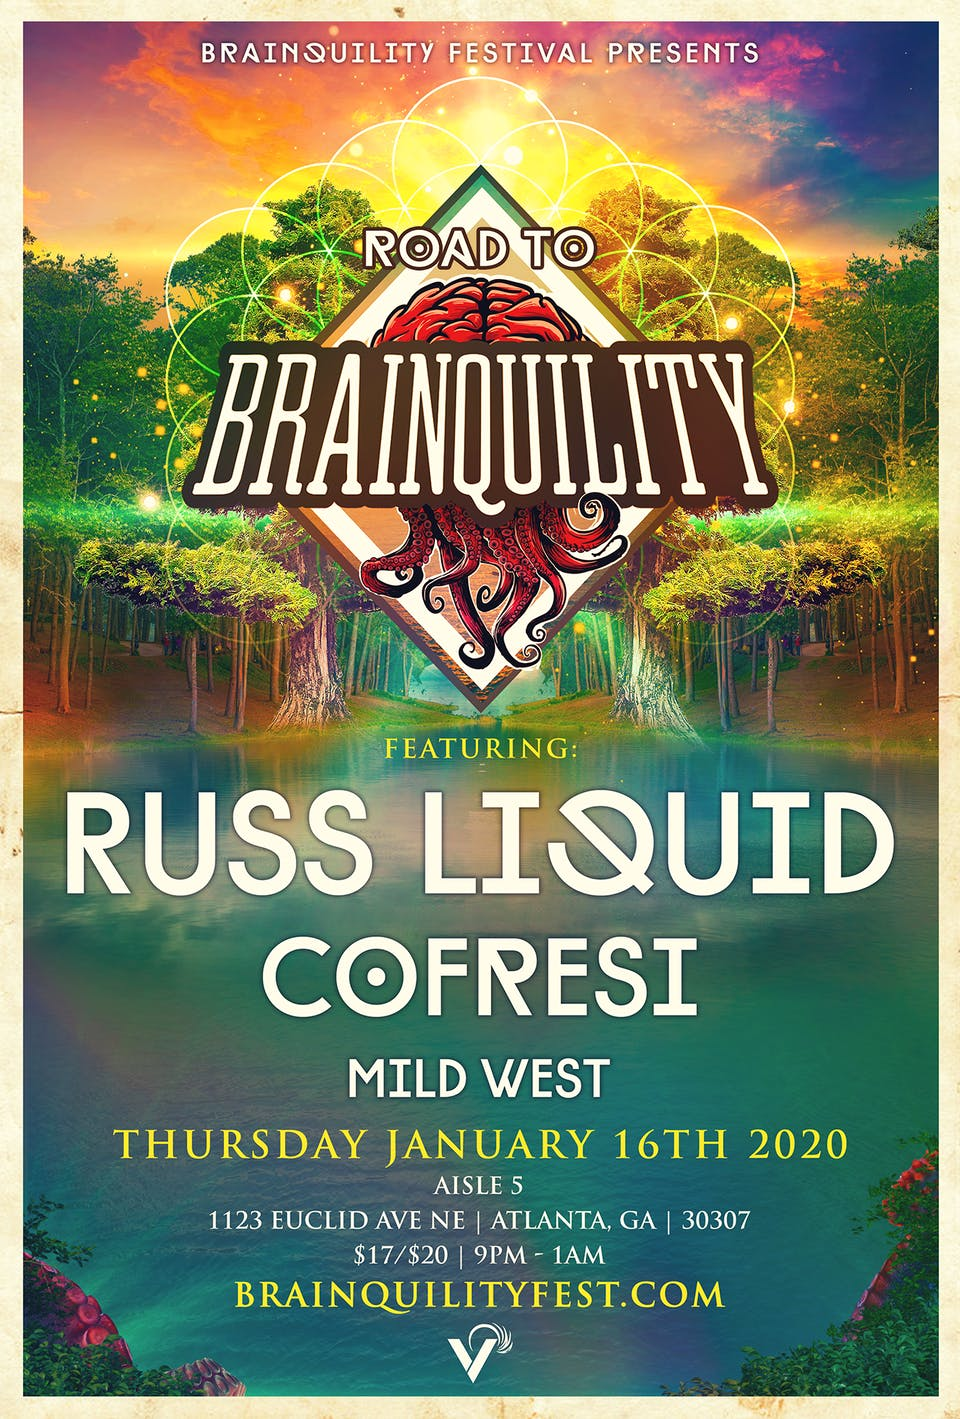 Road to Brainquility - Russ Liquid w/ Cofresi and Mild West